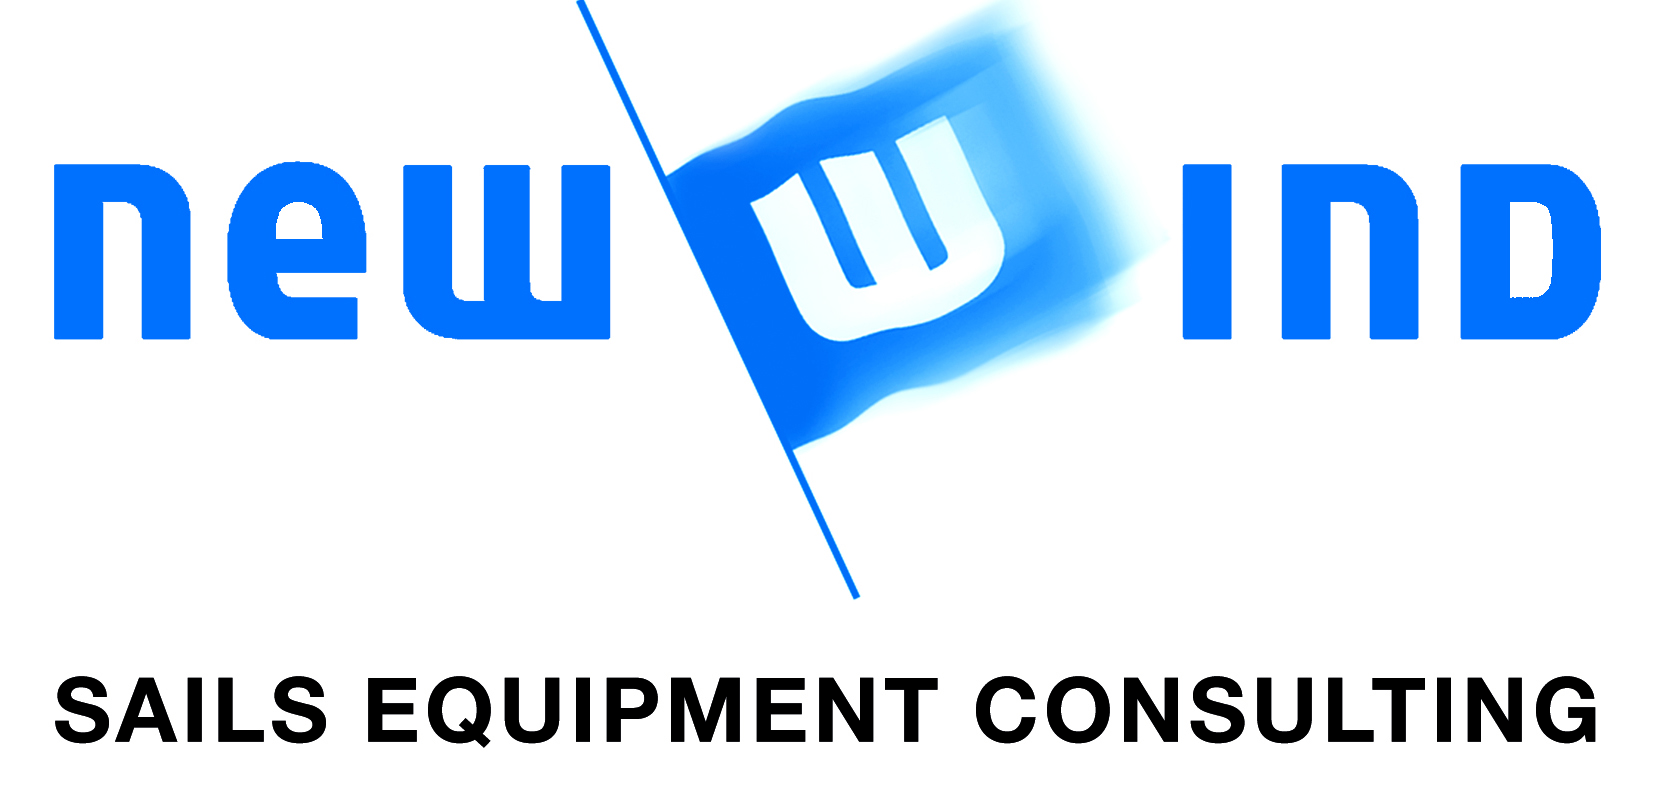 New Wind - Sails Equipment Consulting